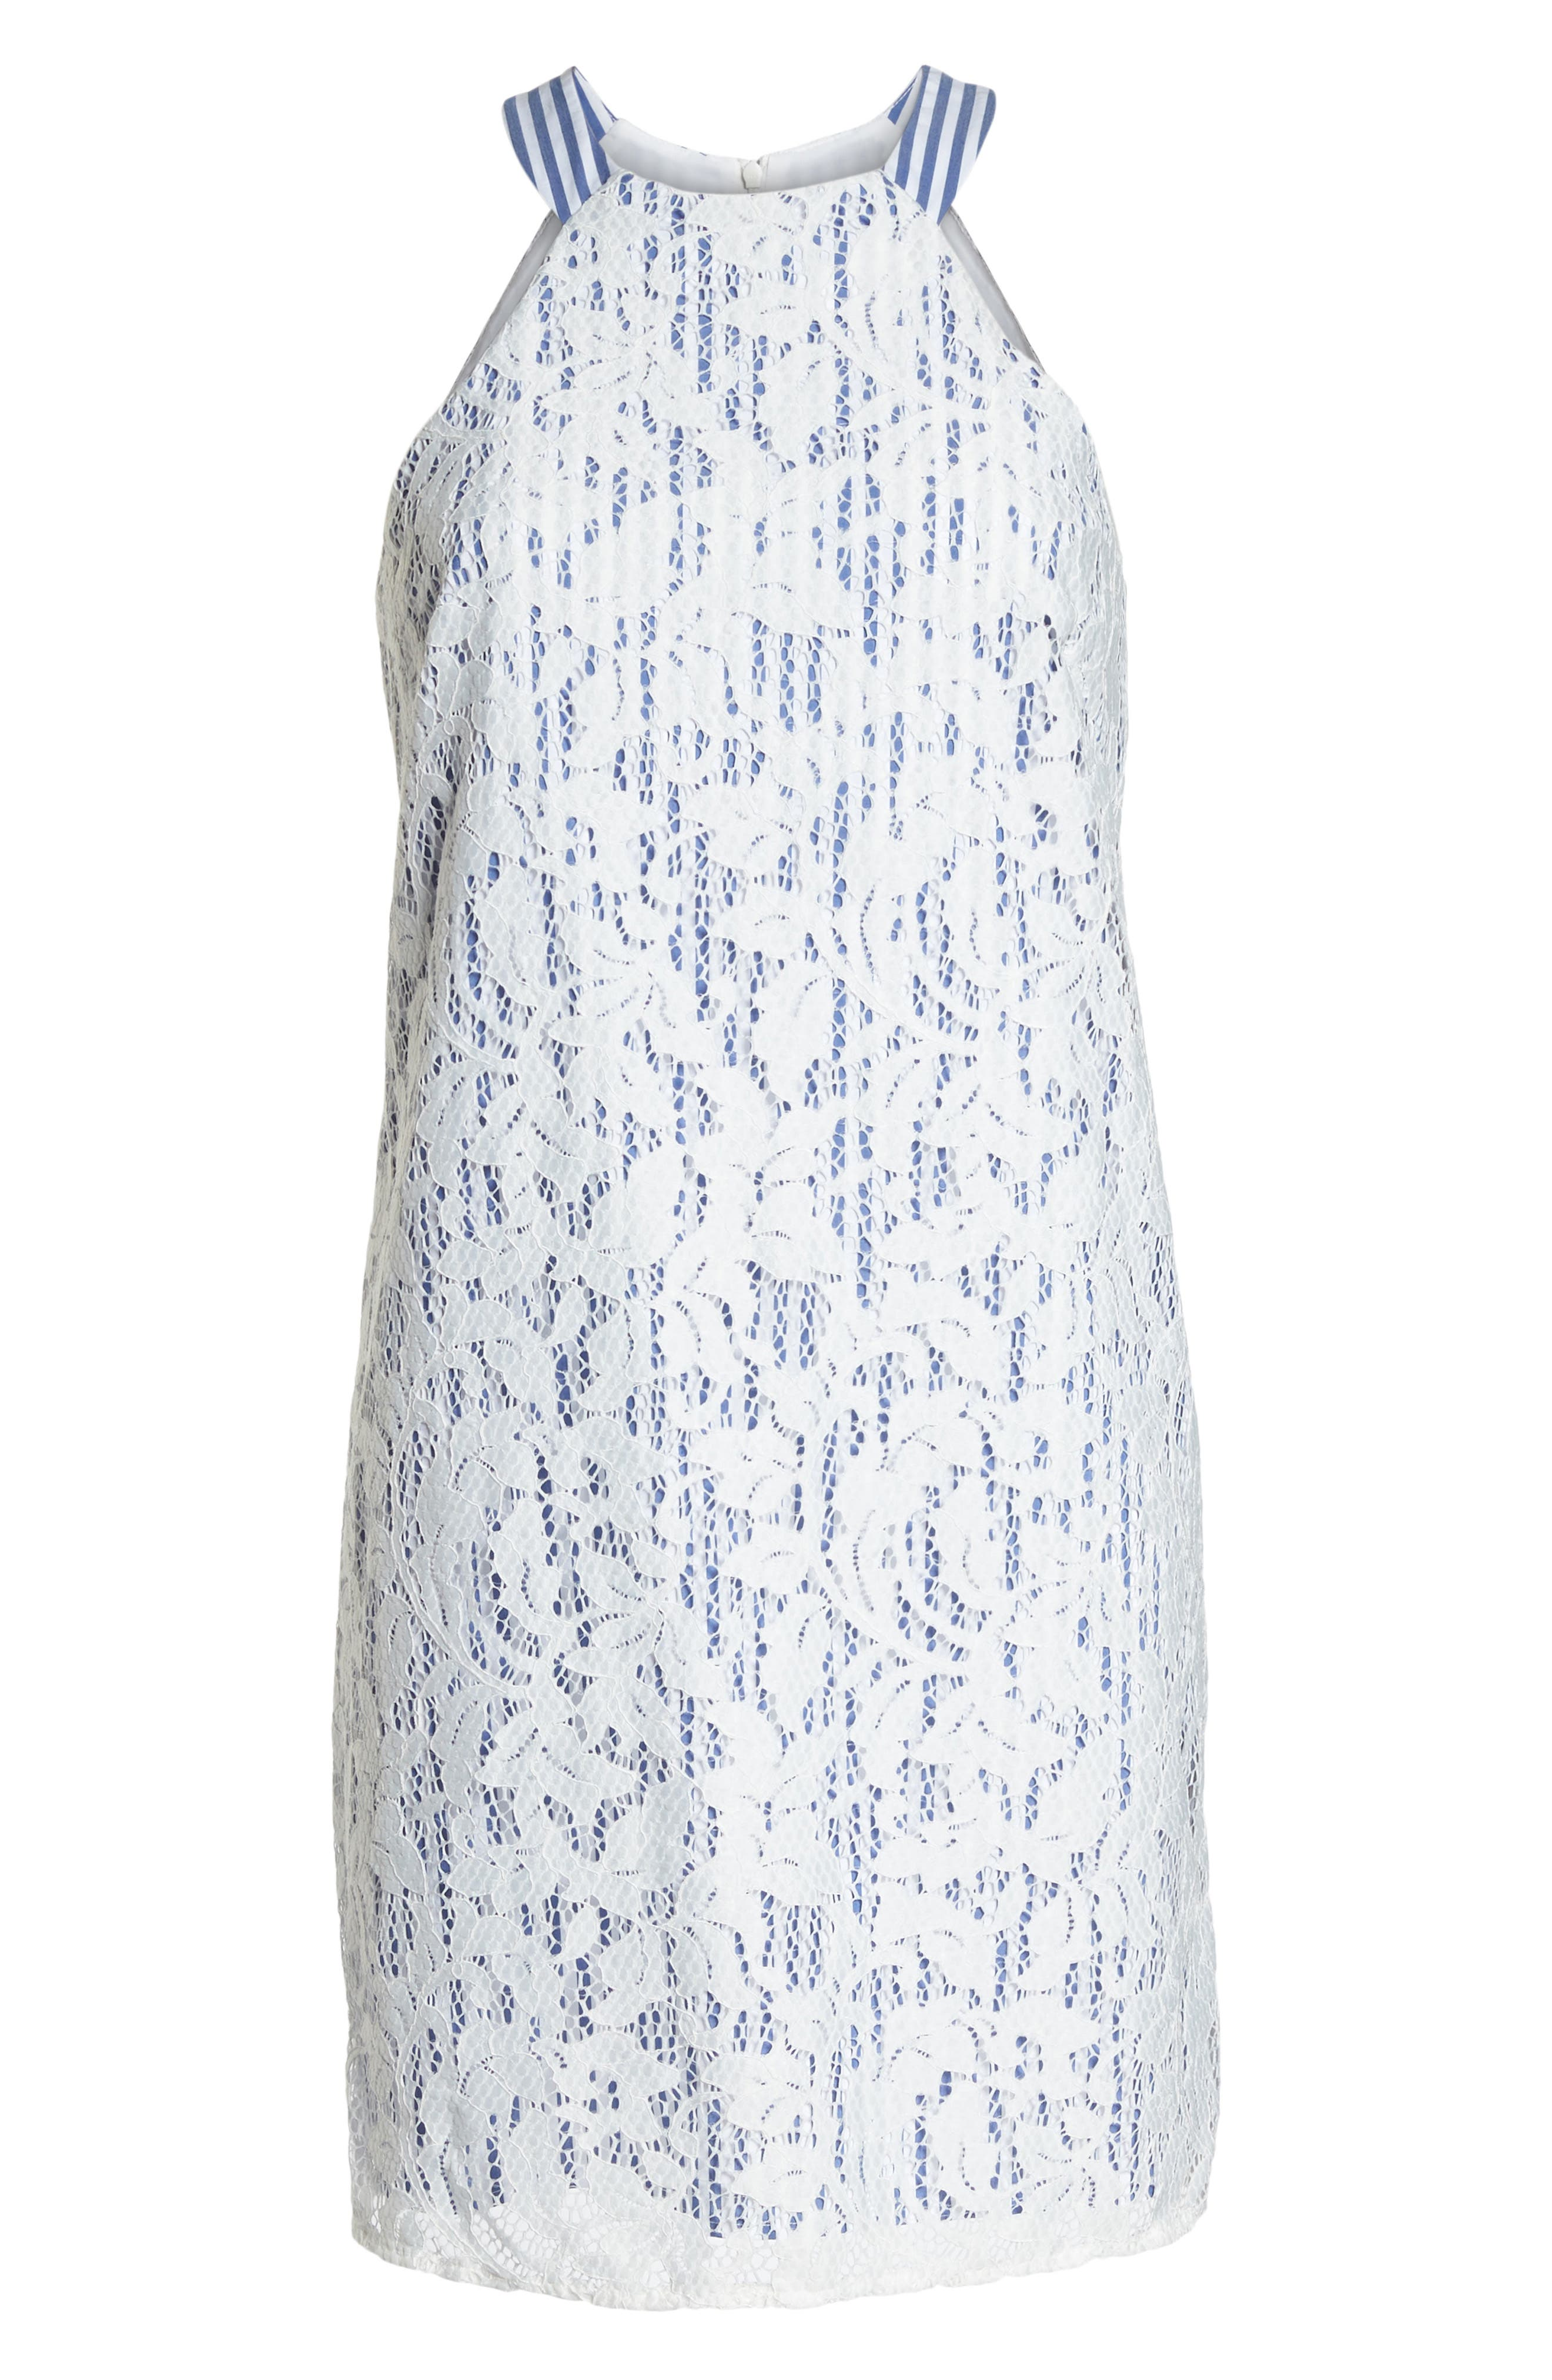 Pinstripe Lace Overlay Shift Dress,                             Alternate thumbnail 7, color,                             White/ Blue